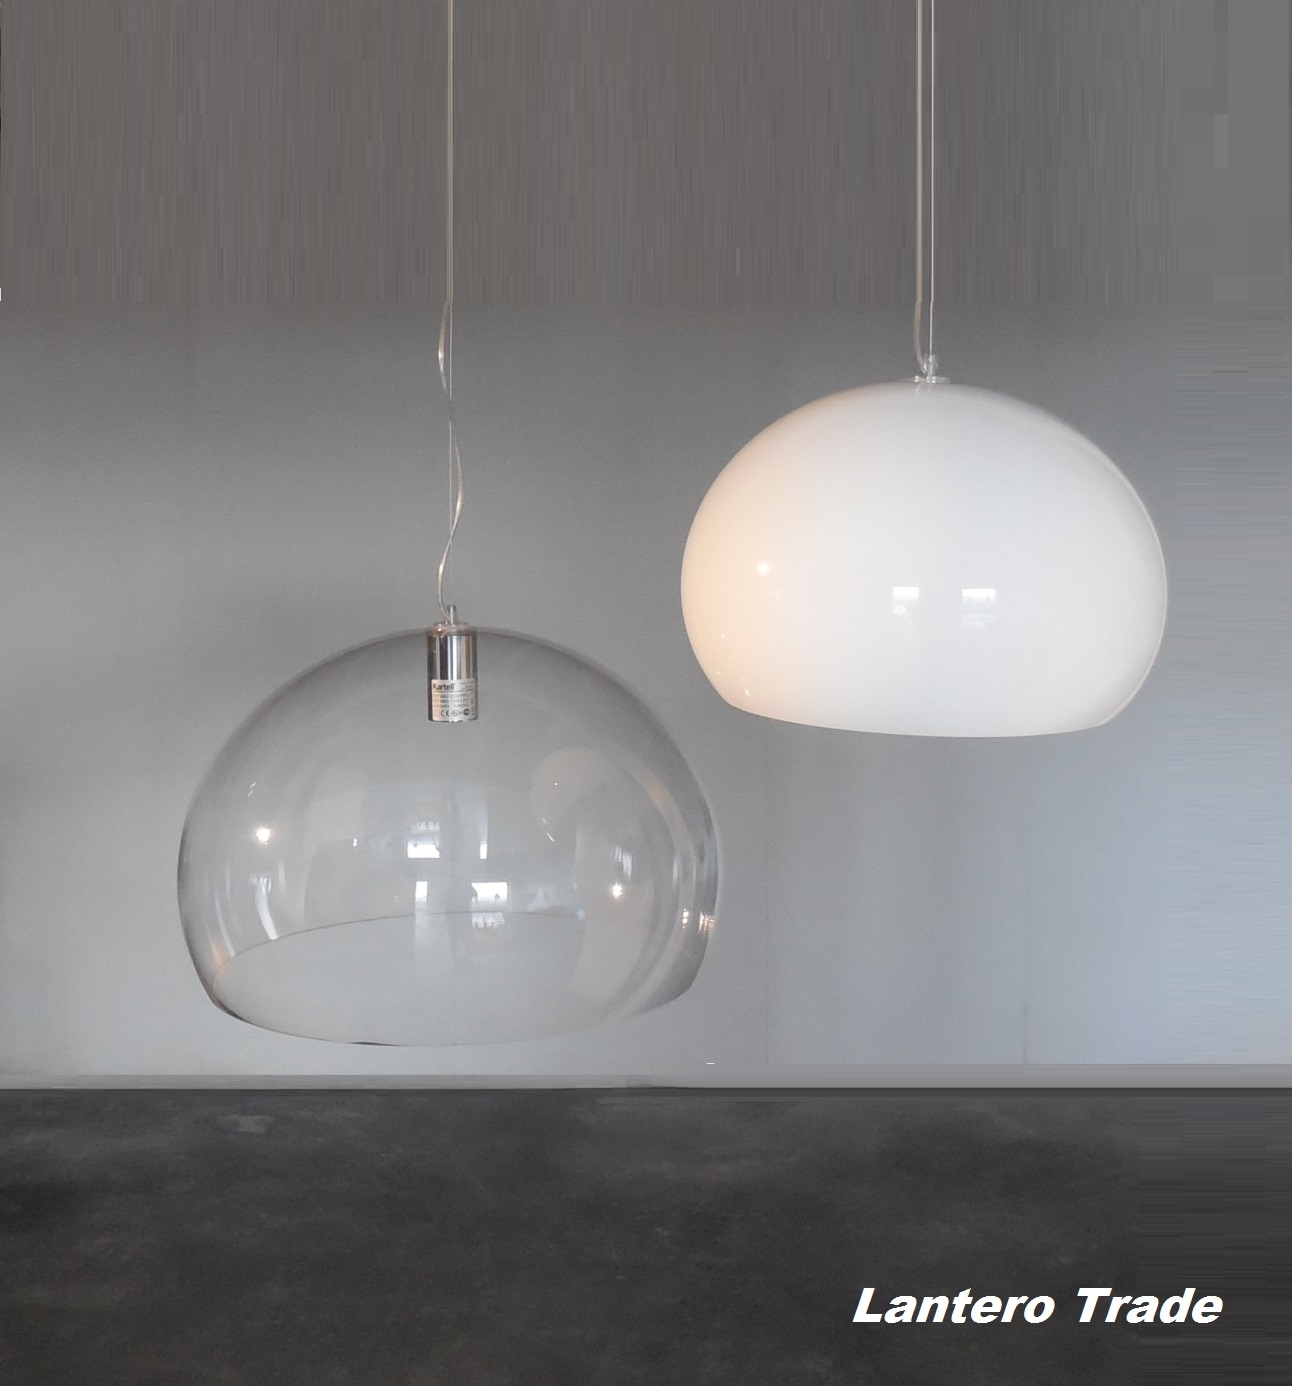 Easy Kartell Illuminazione A Sospensione Living Corriere Pictures to pin on P...